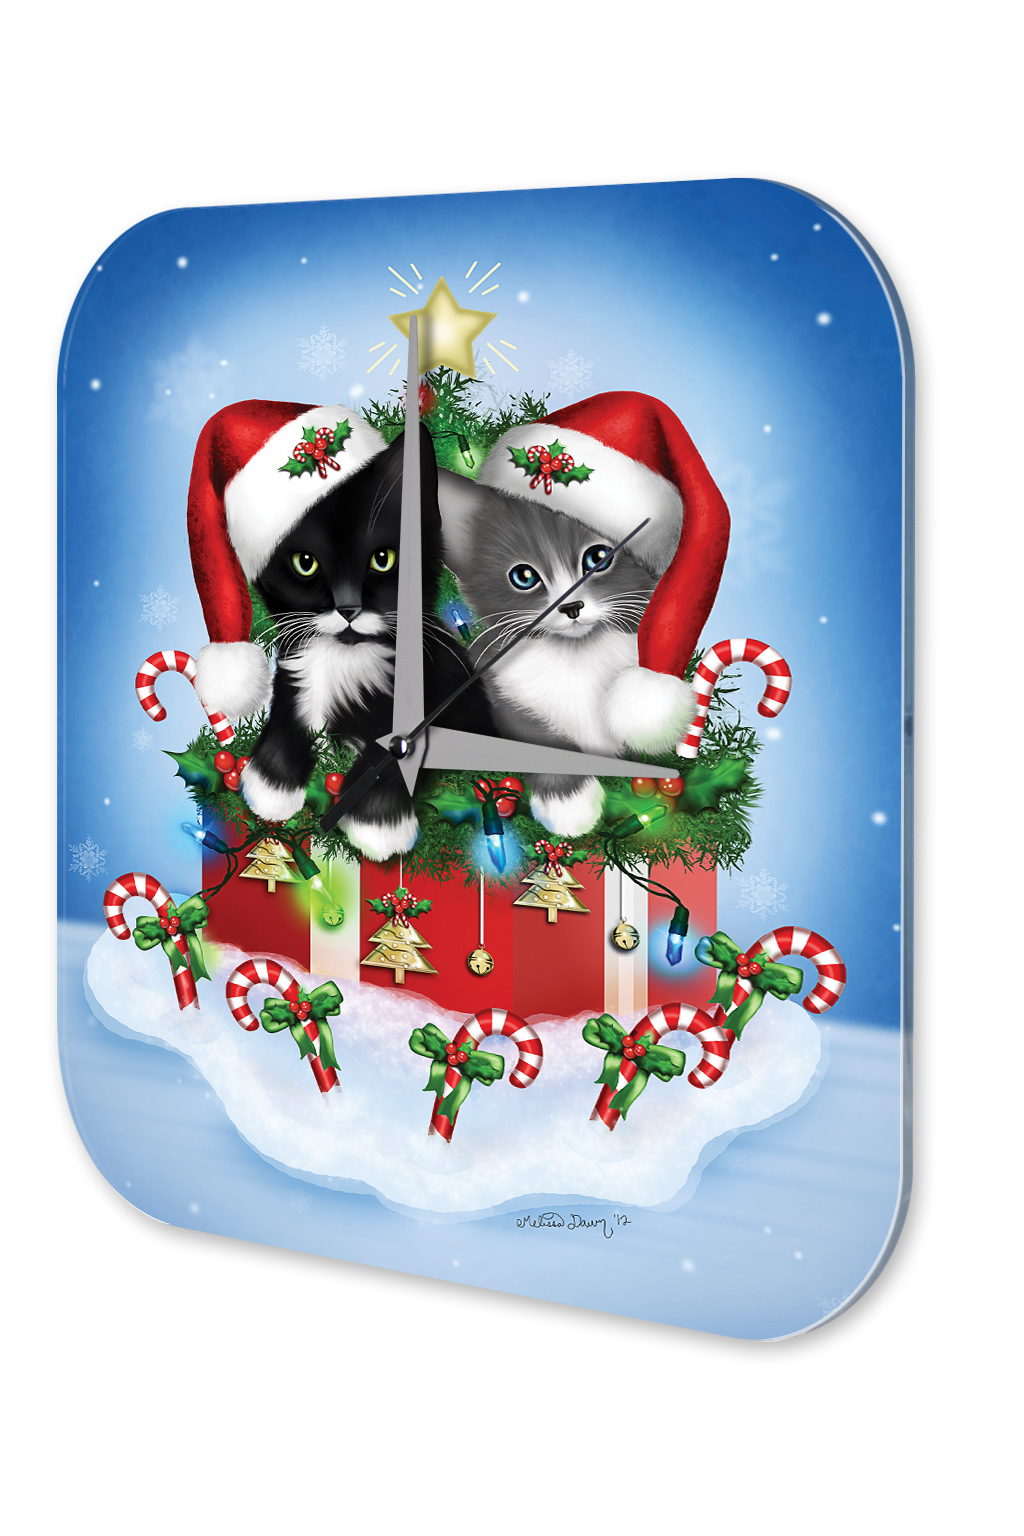 Wall clock christmas decoration cat santa hat gift printed for 180 degrees christmas decoration